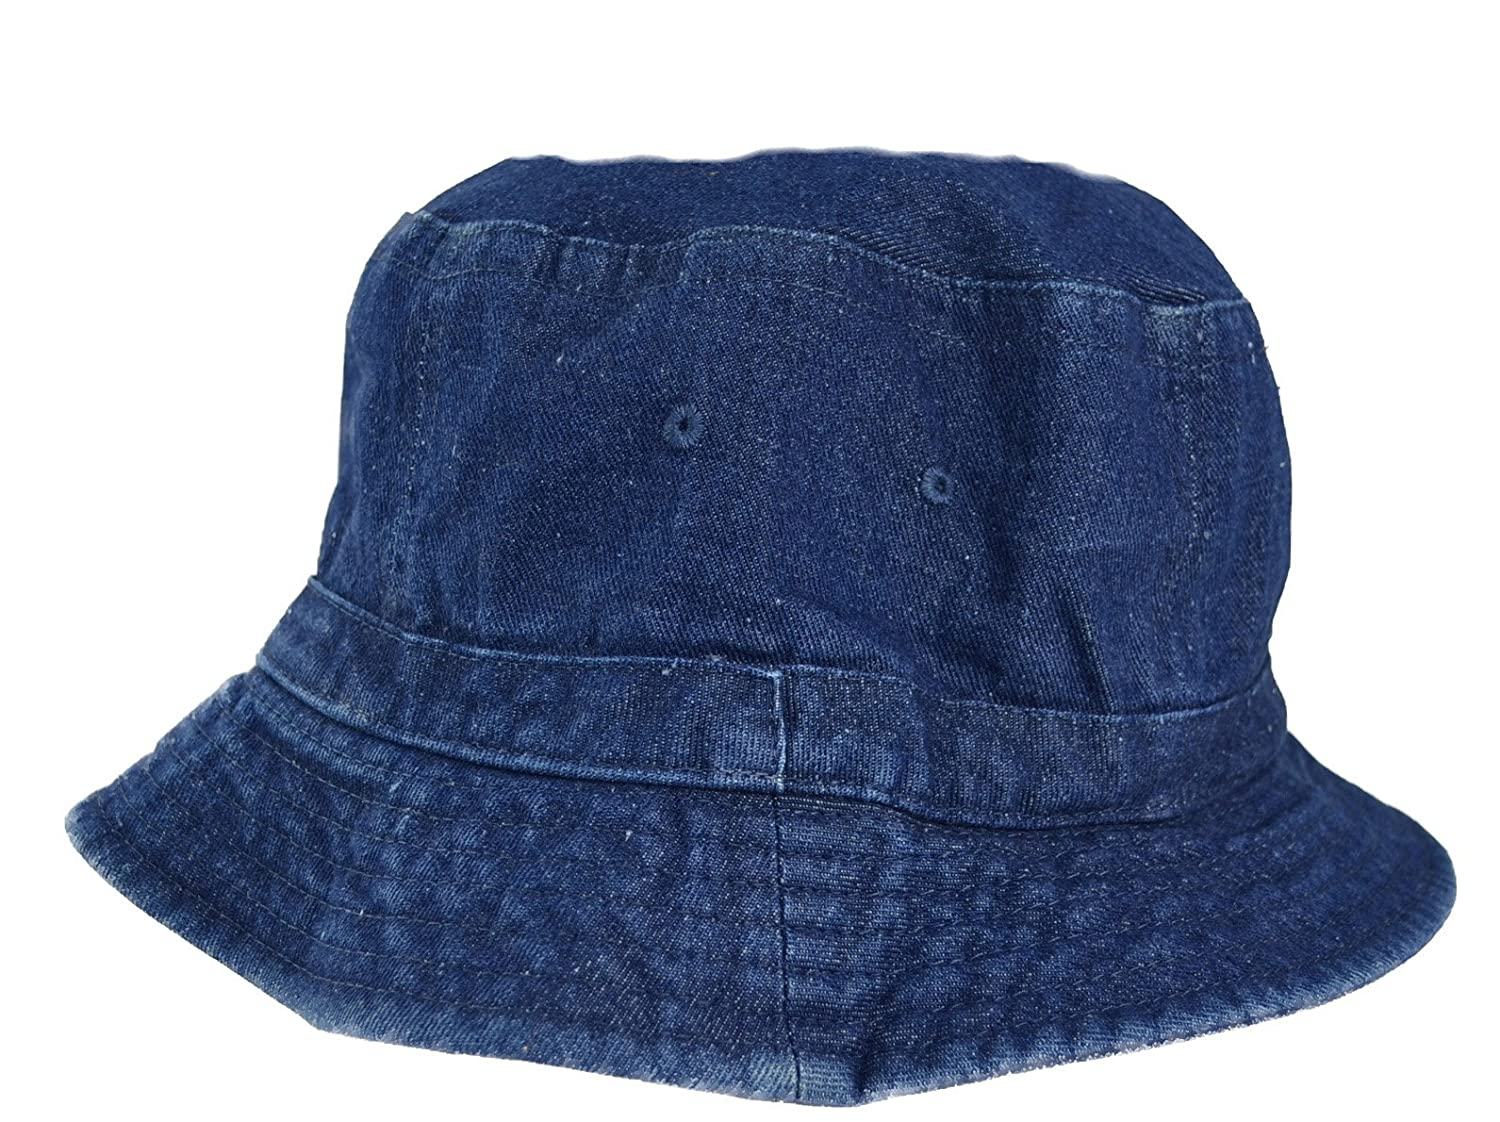 5587873b4c0a5 Amazon.com  Denim Bucket Hat for Adults-Small-Medium  Clothing